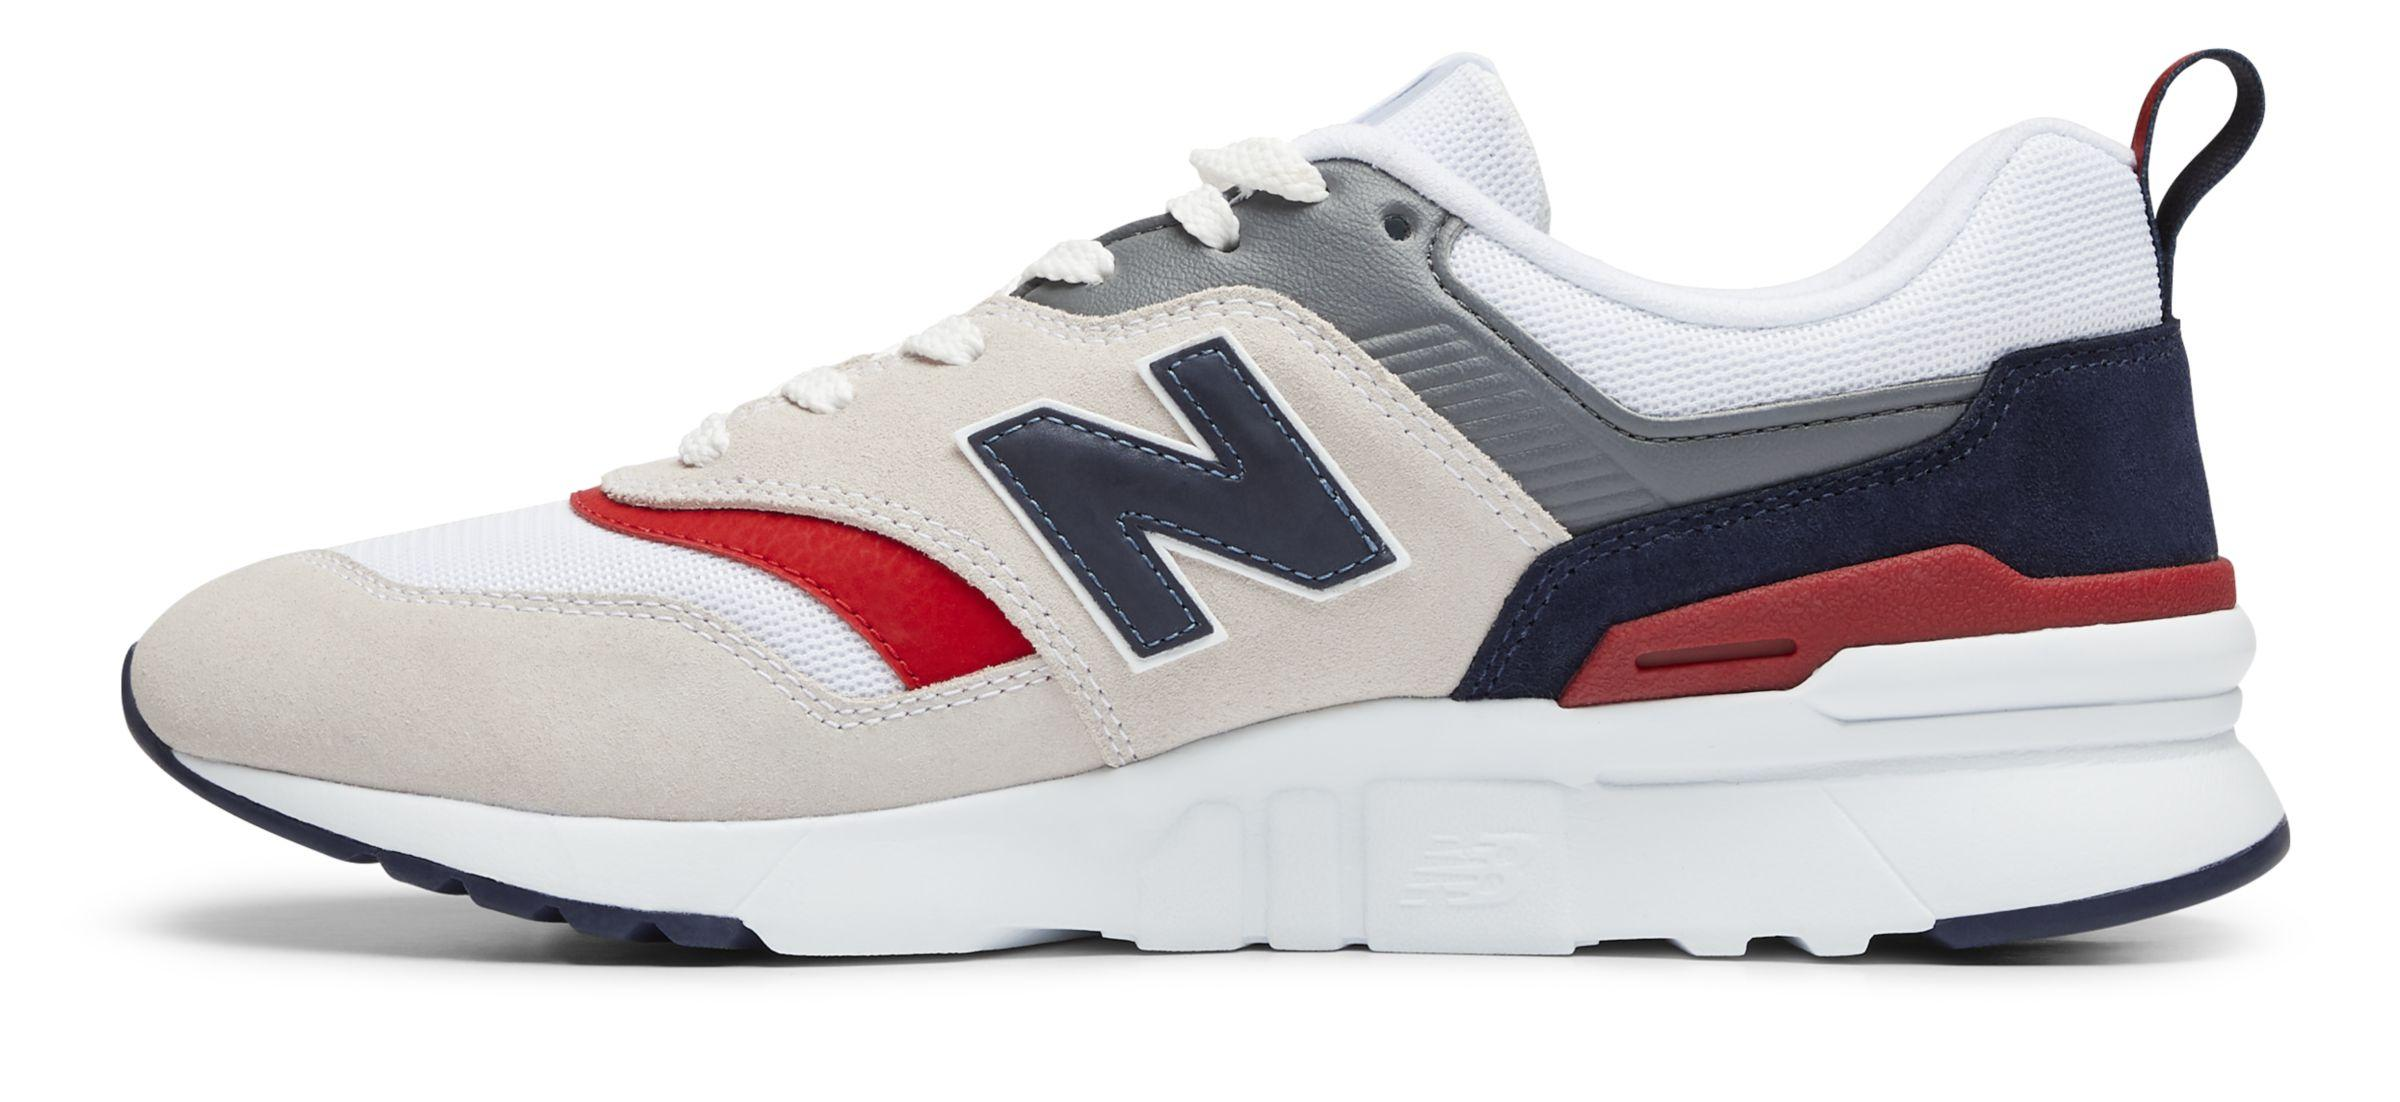 New Balance Rubber 997h Lfc for Men - Lyst